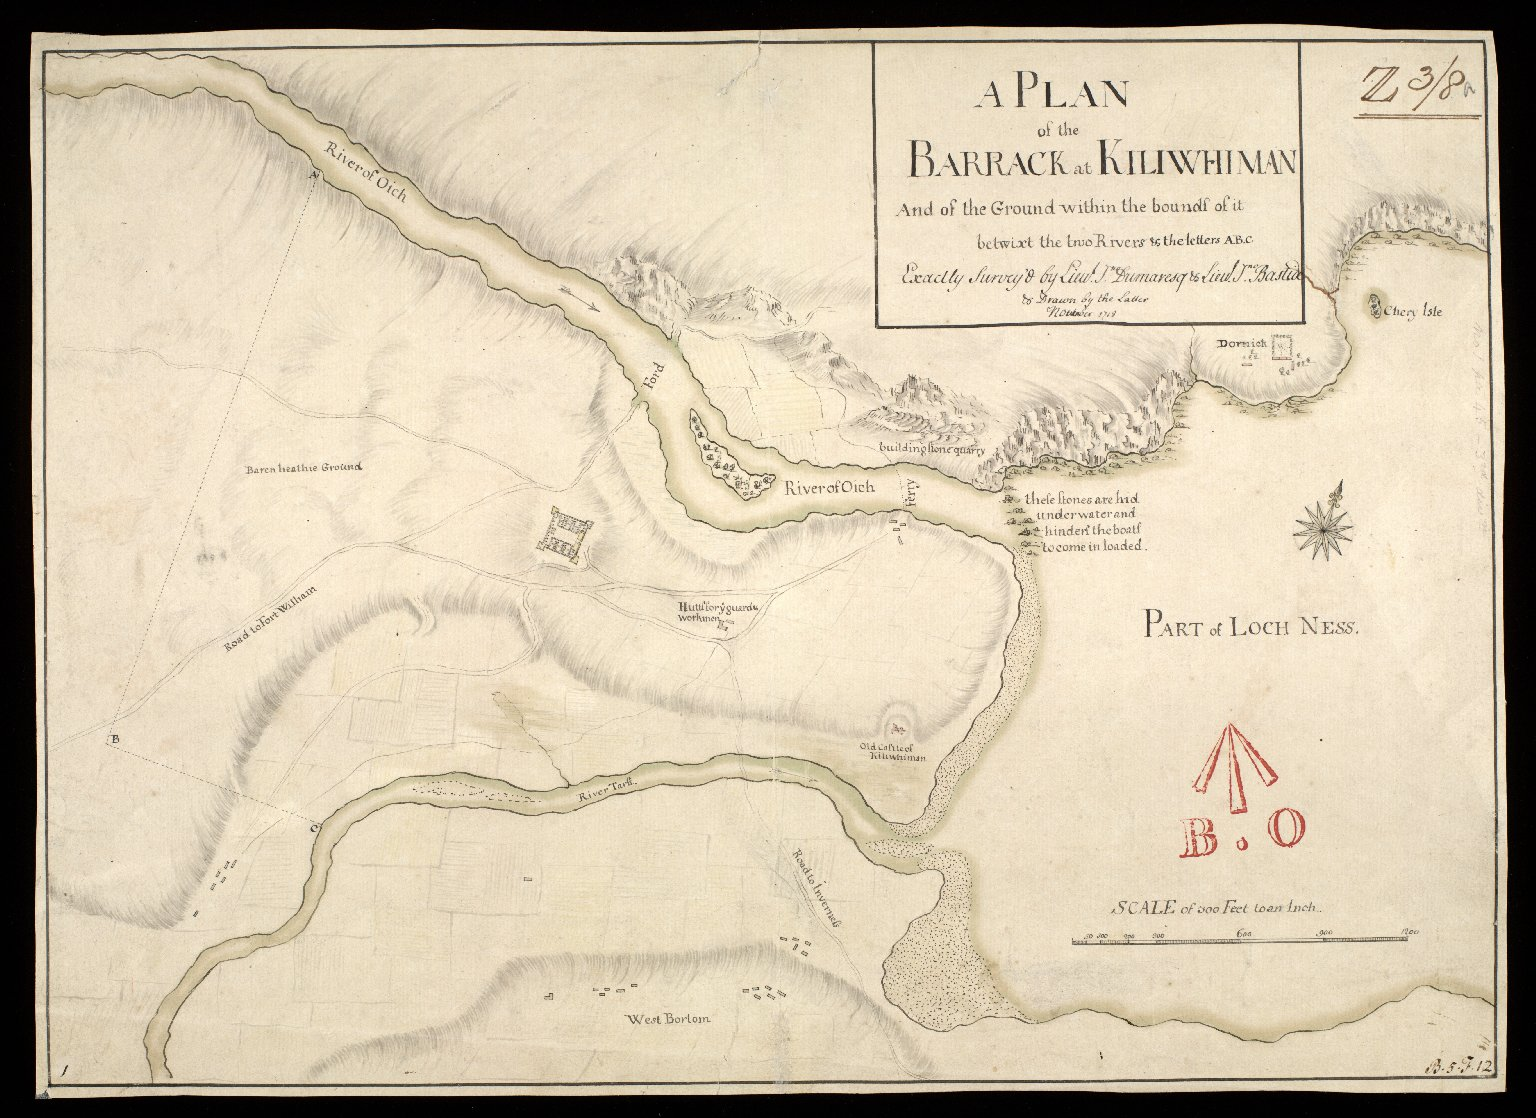 A Plan of the barrack at Kiliwhiman [i.e. Kiliwhimen] : and of the ground within the bounds of it betwixt the two rivers & the letters AB.C [1 of 1]